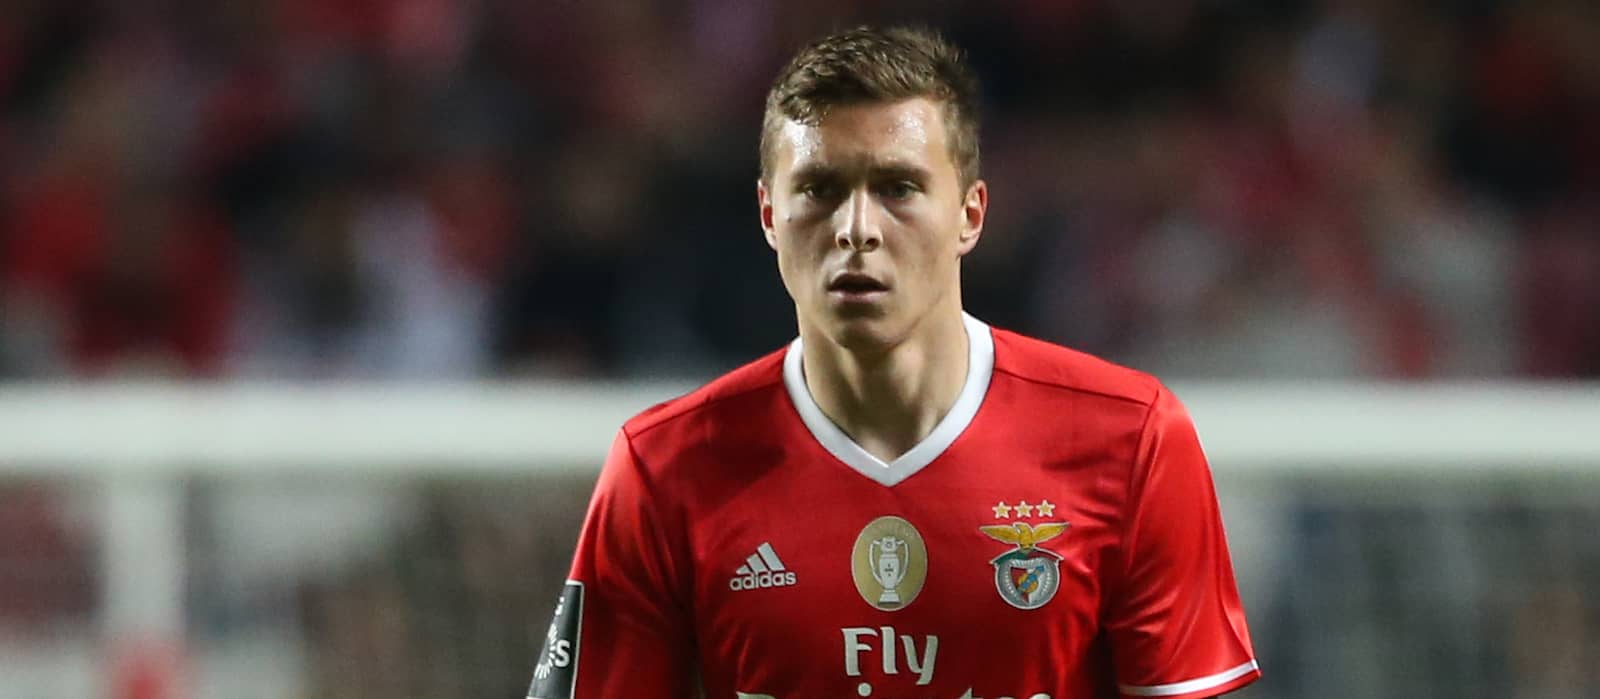 Victor Lindelof back in Benfica squad for game against V.Guimaraes